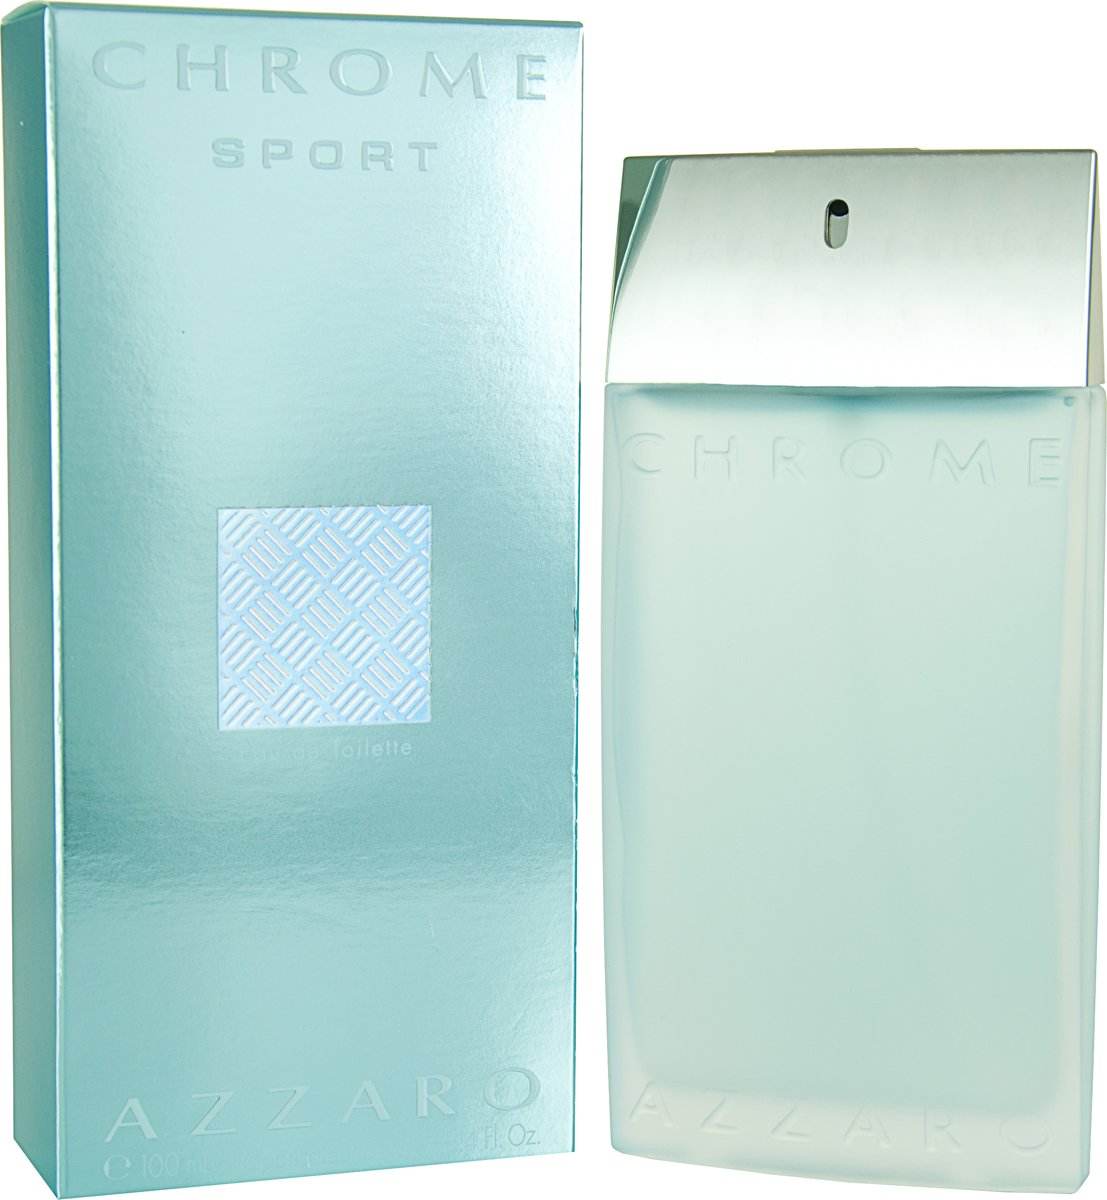 Azzaro Chrome Sport for Men - 100 ml - Eau de toilette